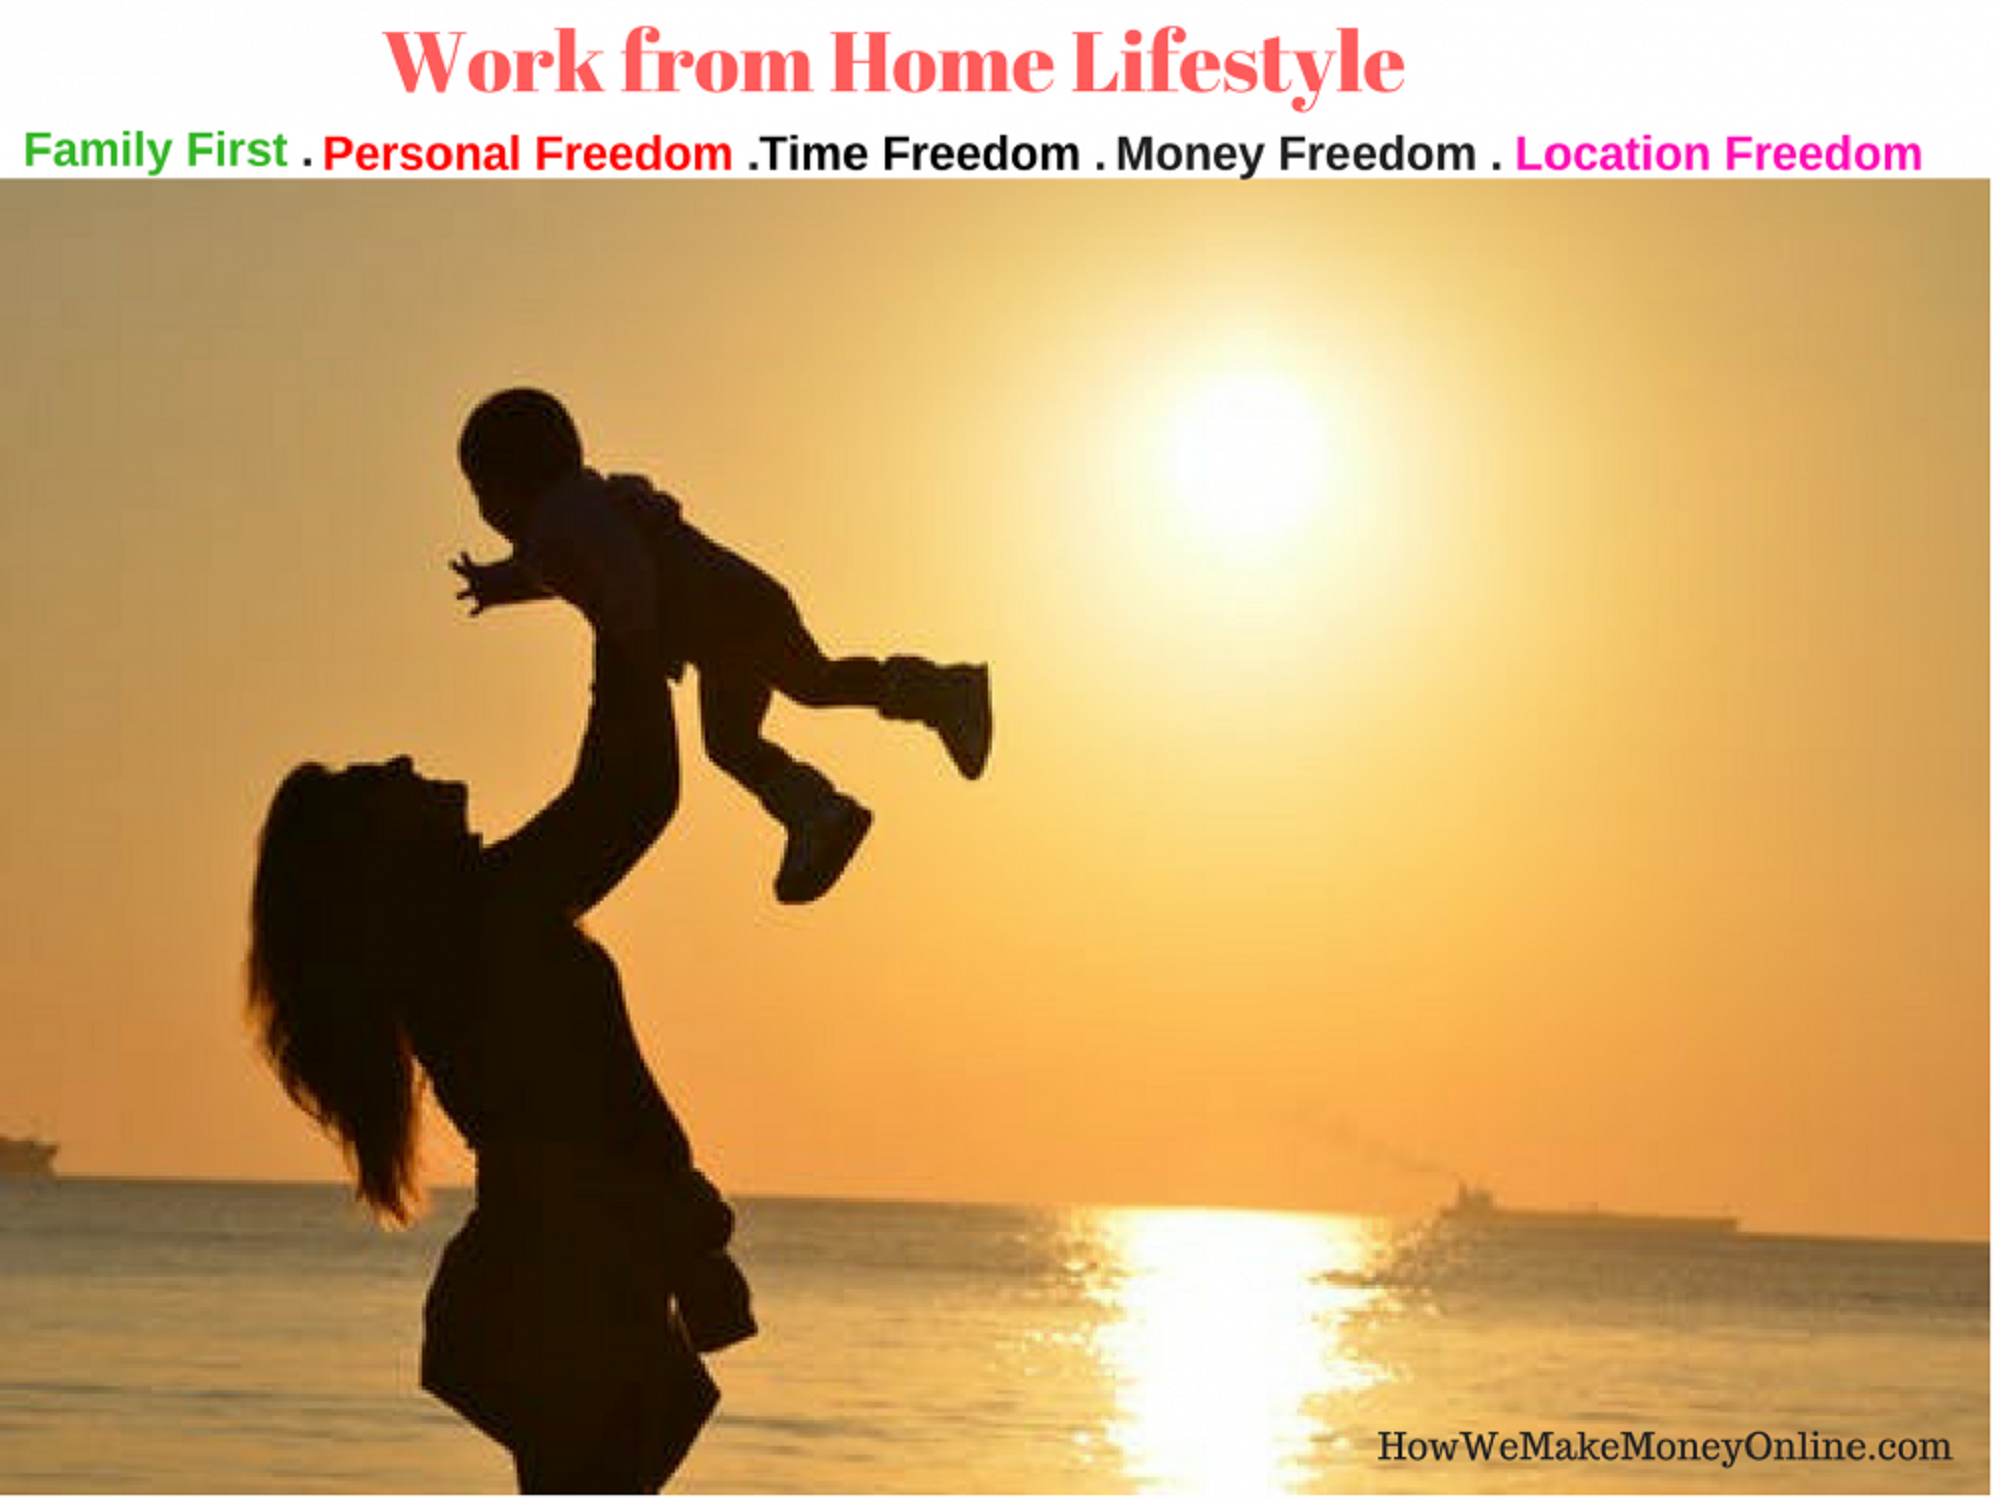 work from home lifestyle